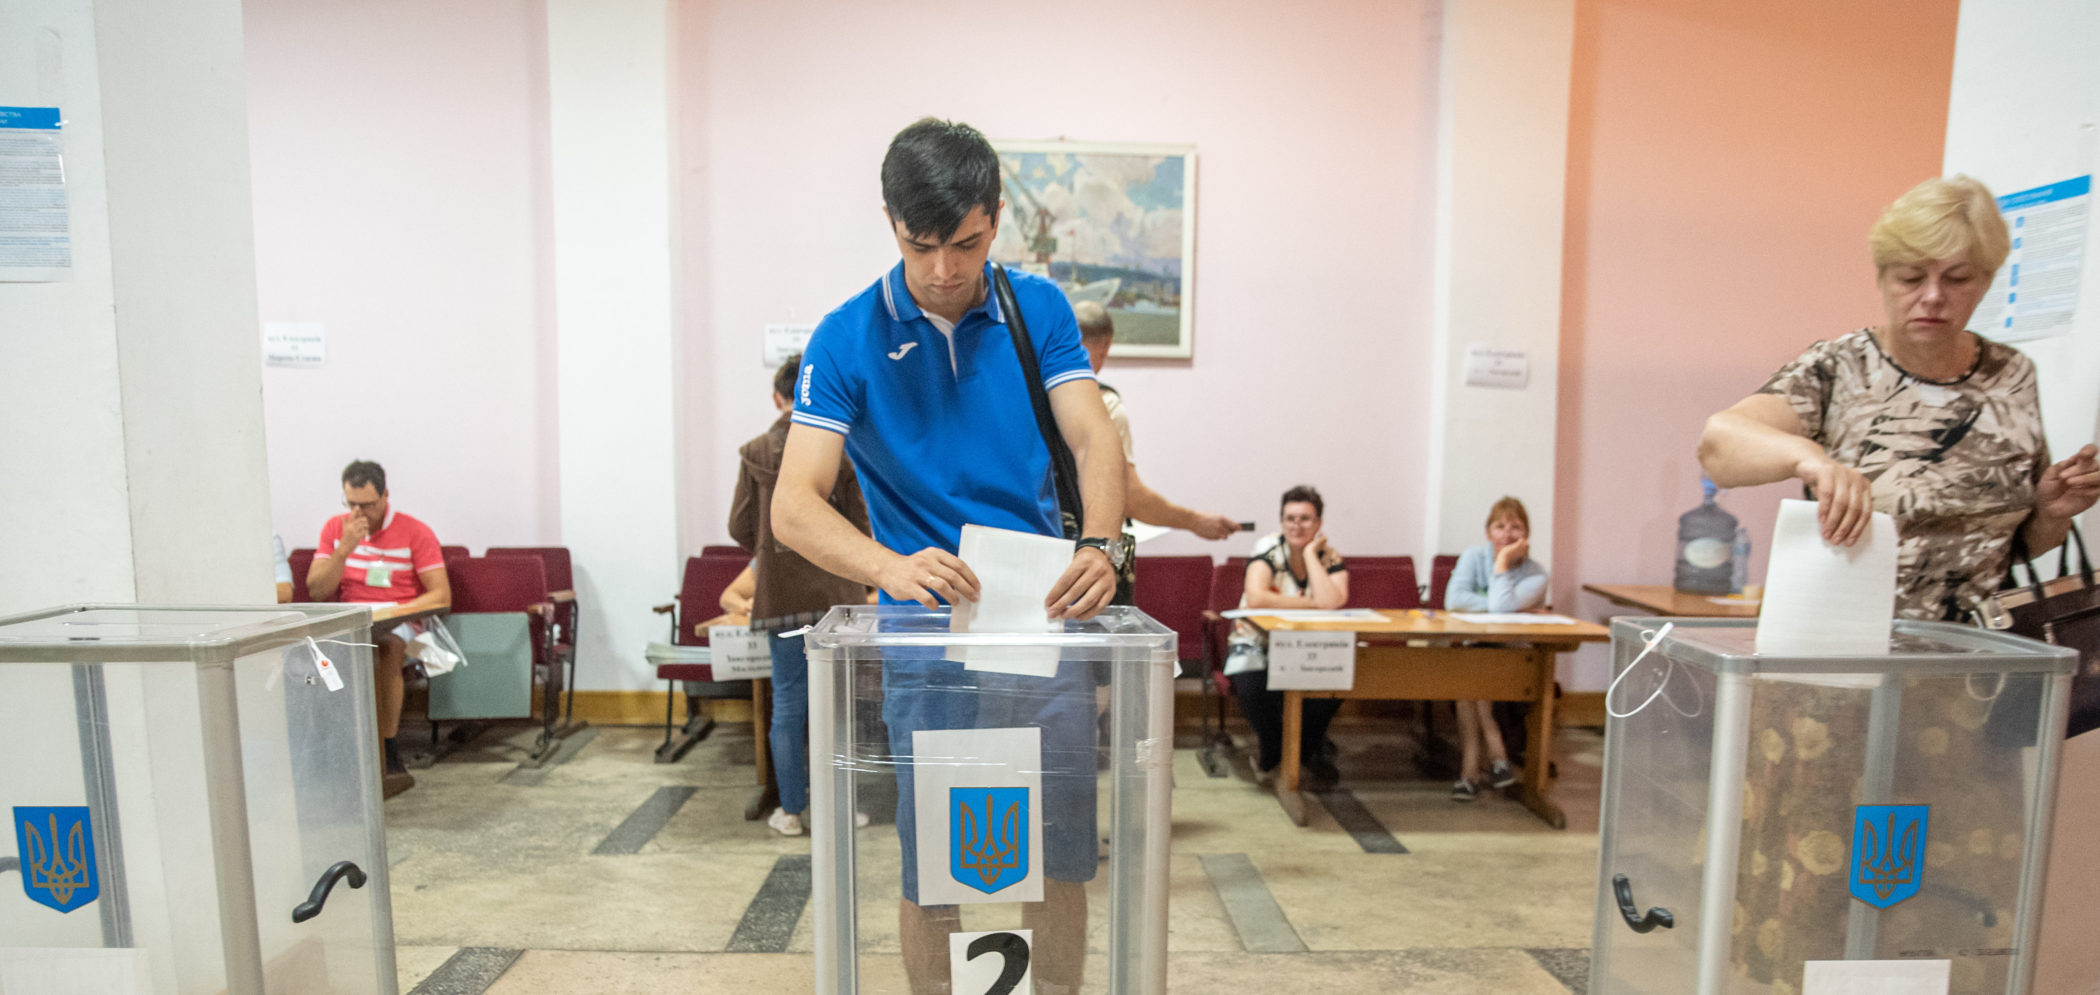 IFES' Post-Election Report on Ukraine's 2019 Parliamentary Elections